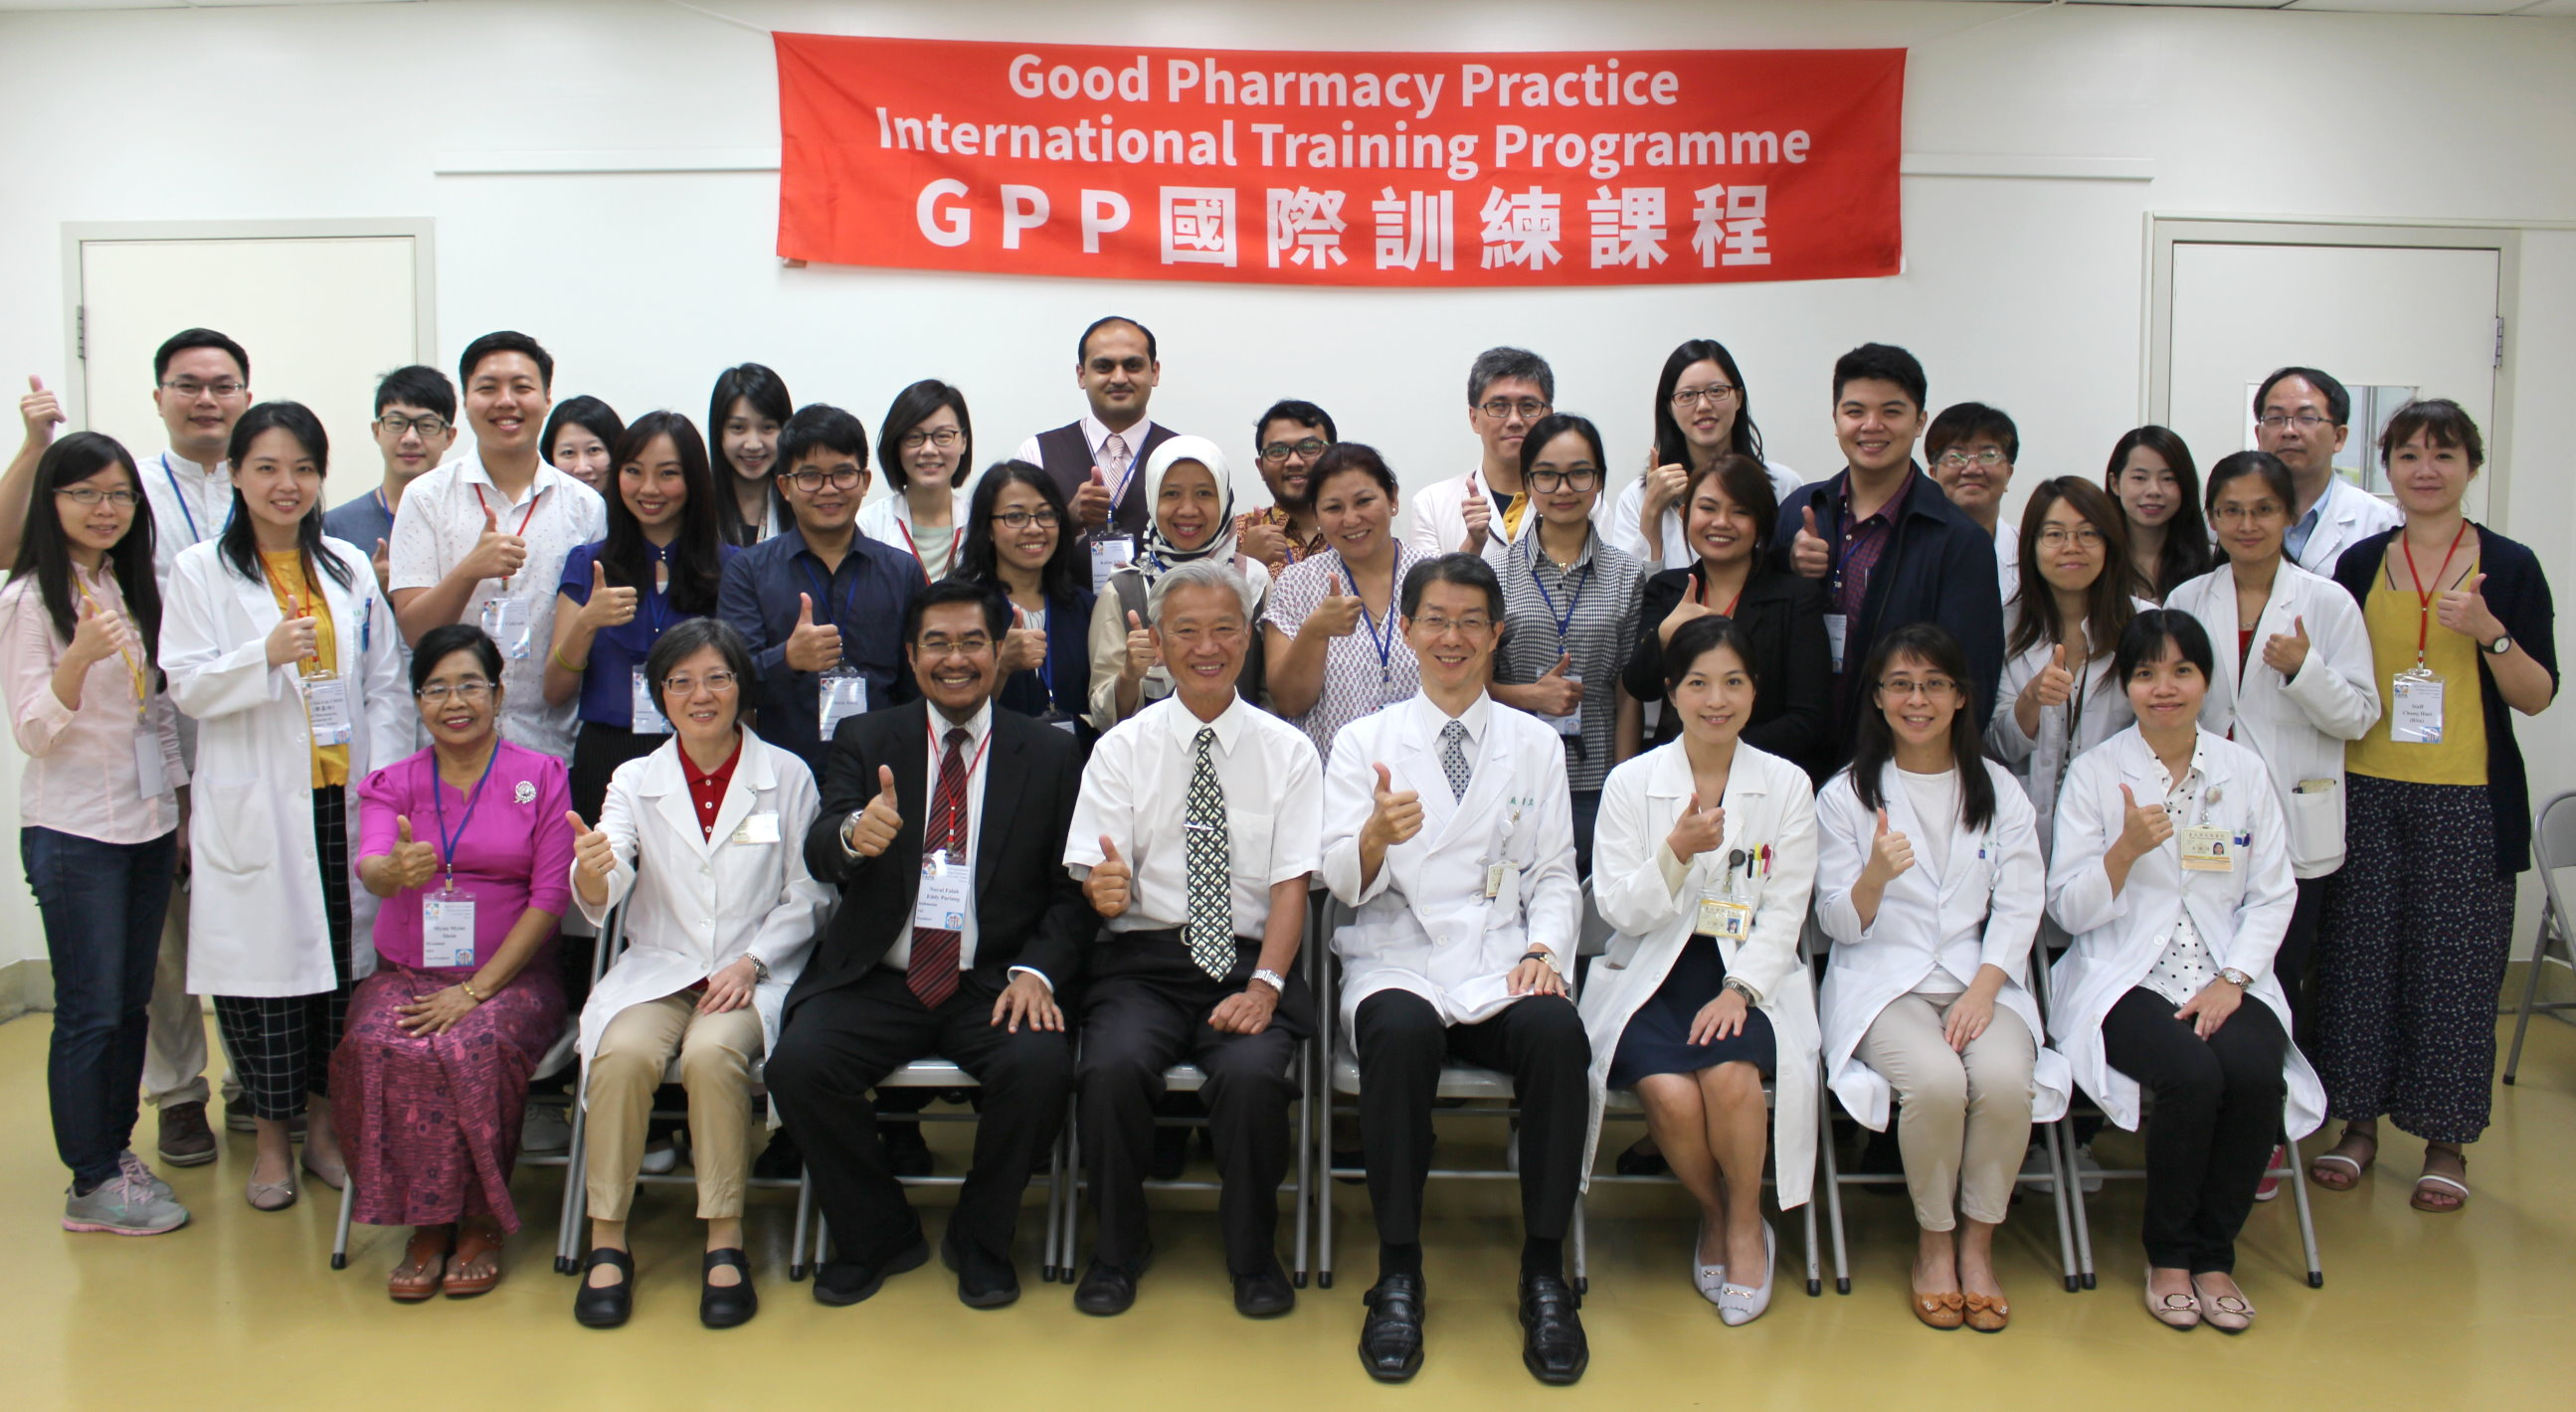 2018 Good Pharmacy Practice (GPP) International Training Programme at Taipei Veterans General Hospital hosted by FAPA Foundation.